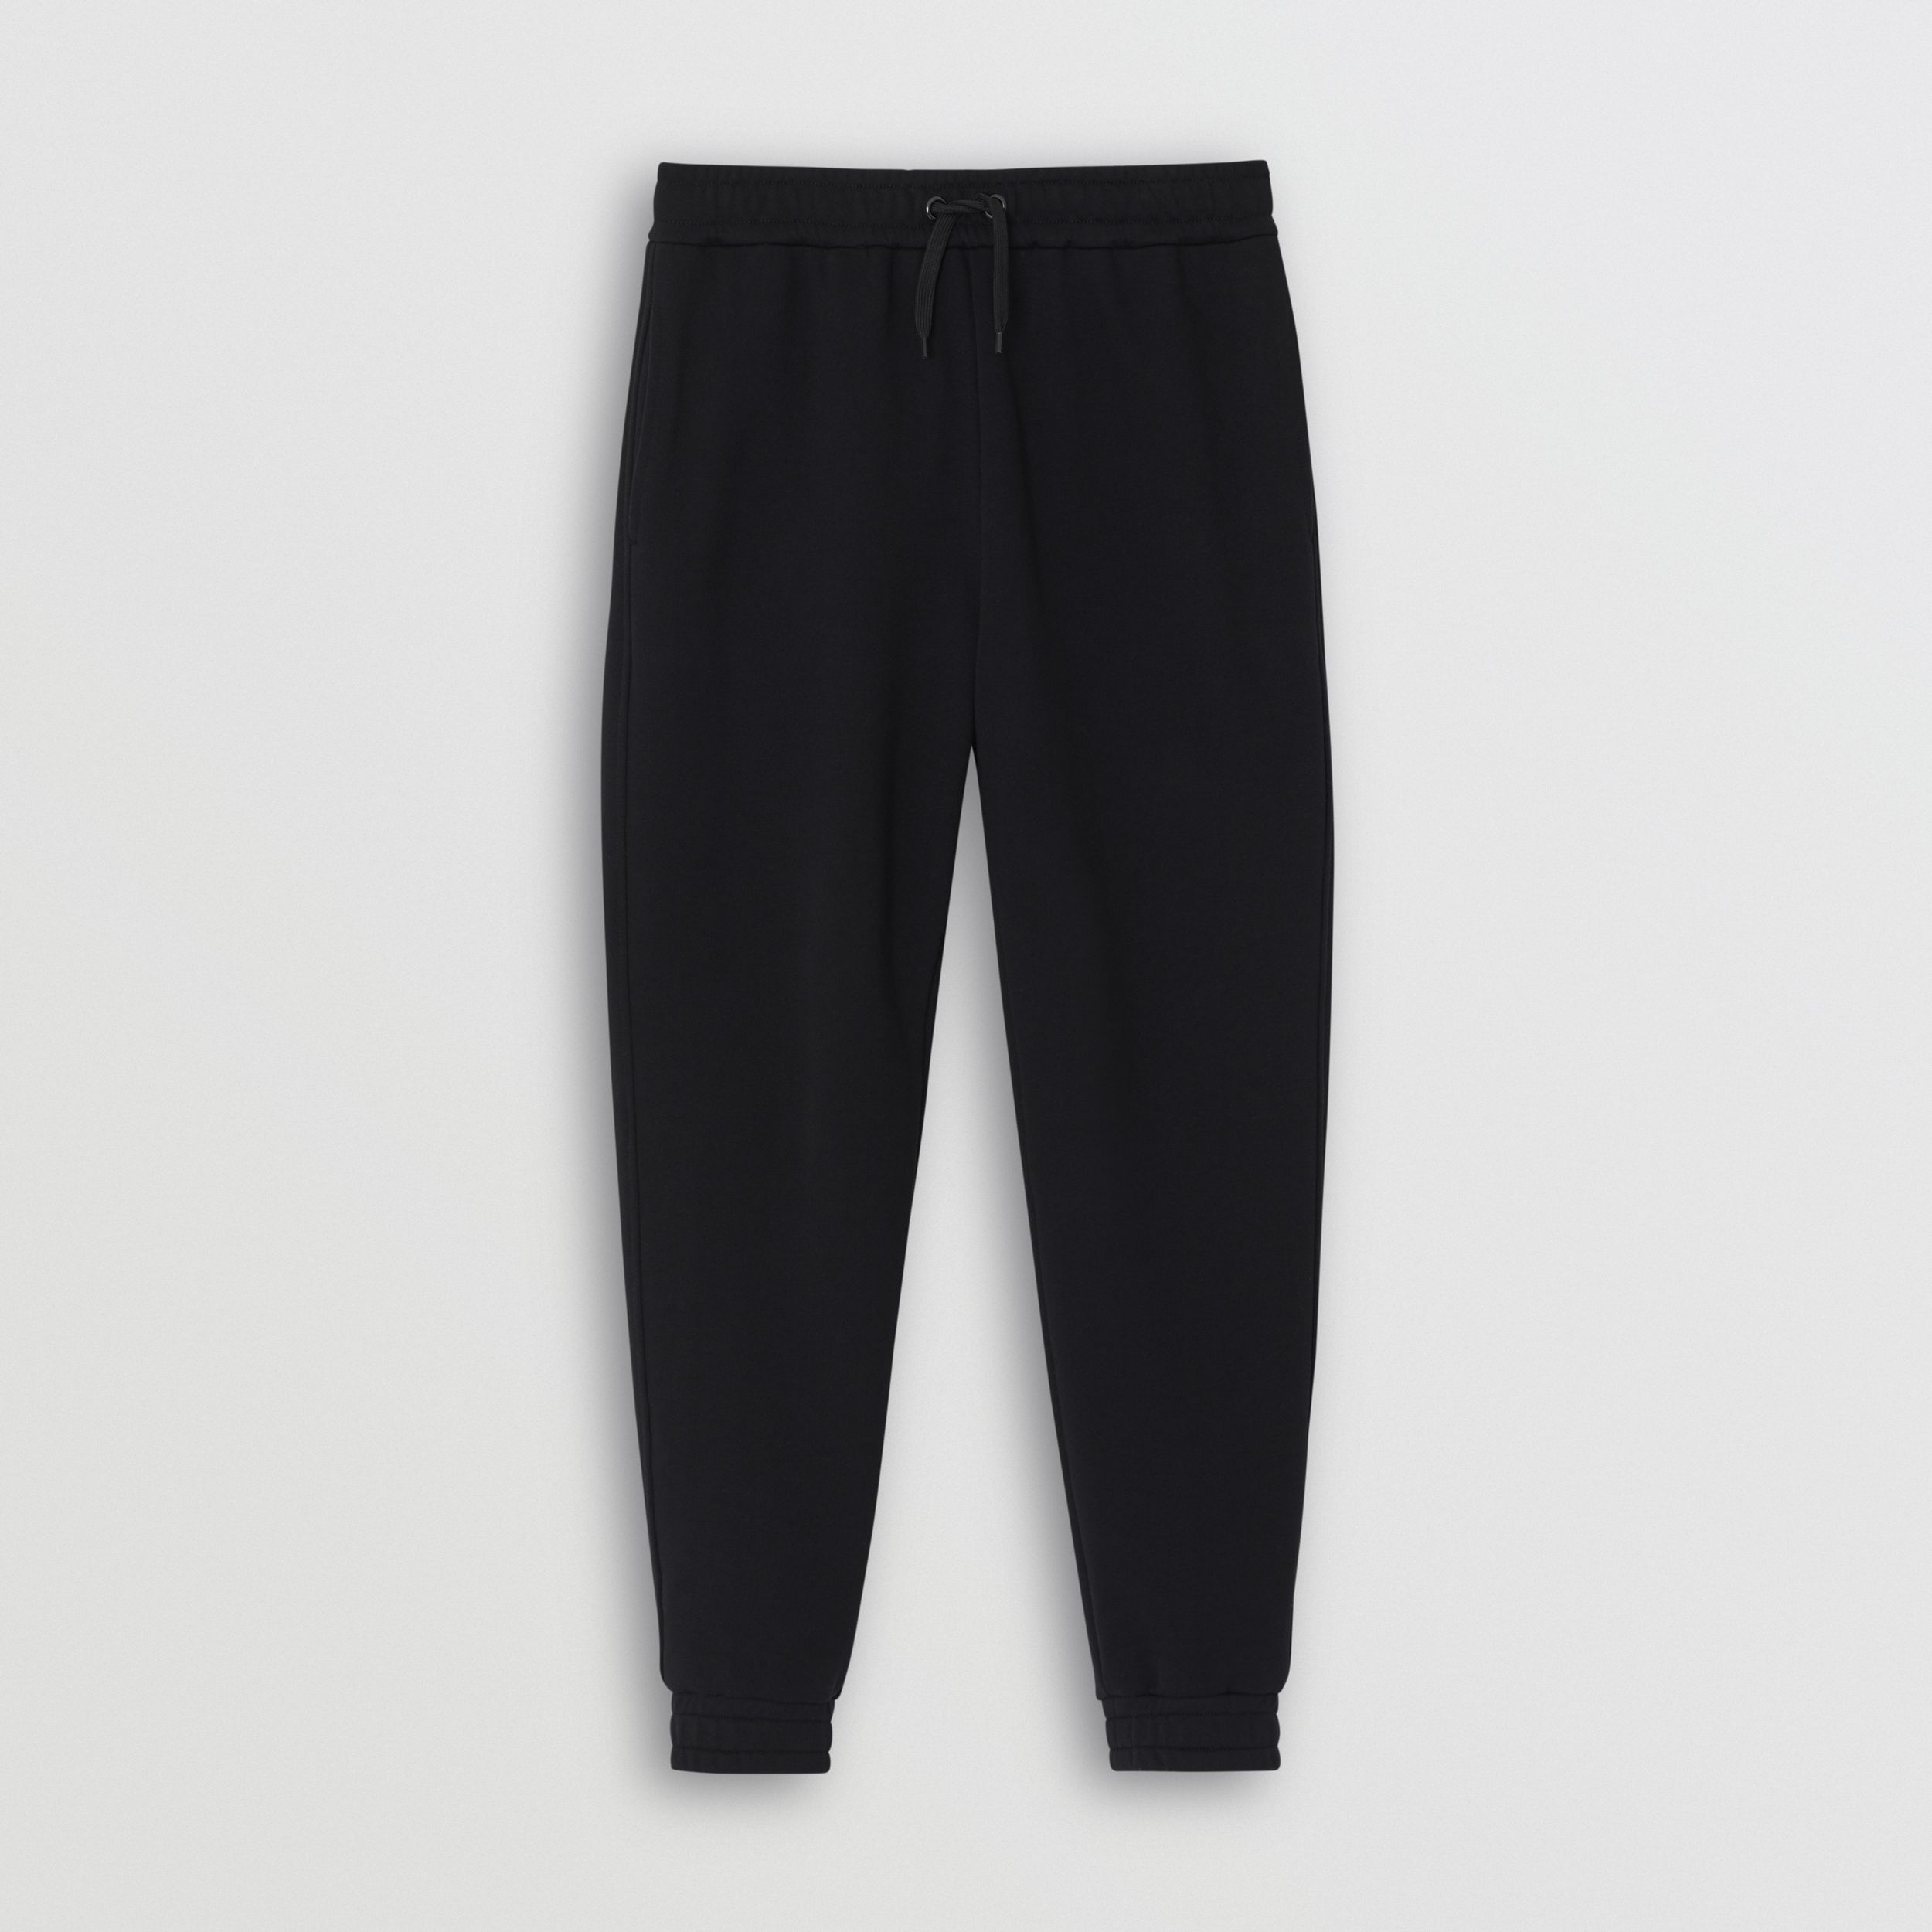 Logo Print Cotton Trackpants in Black - Men | Burberry - 4